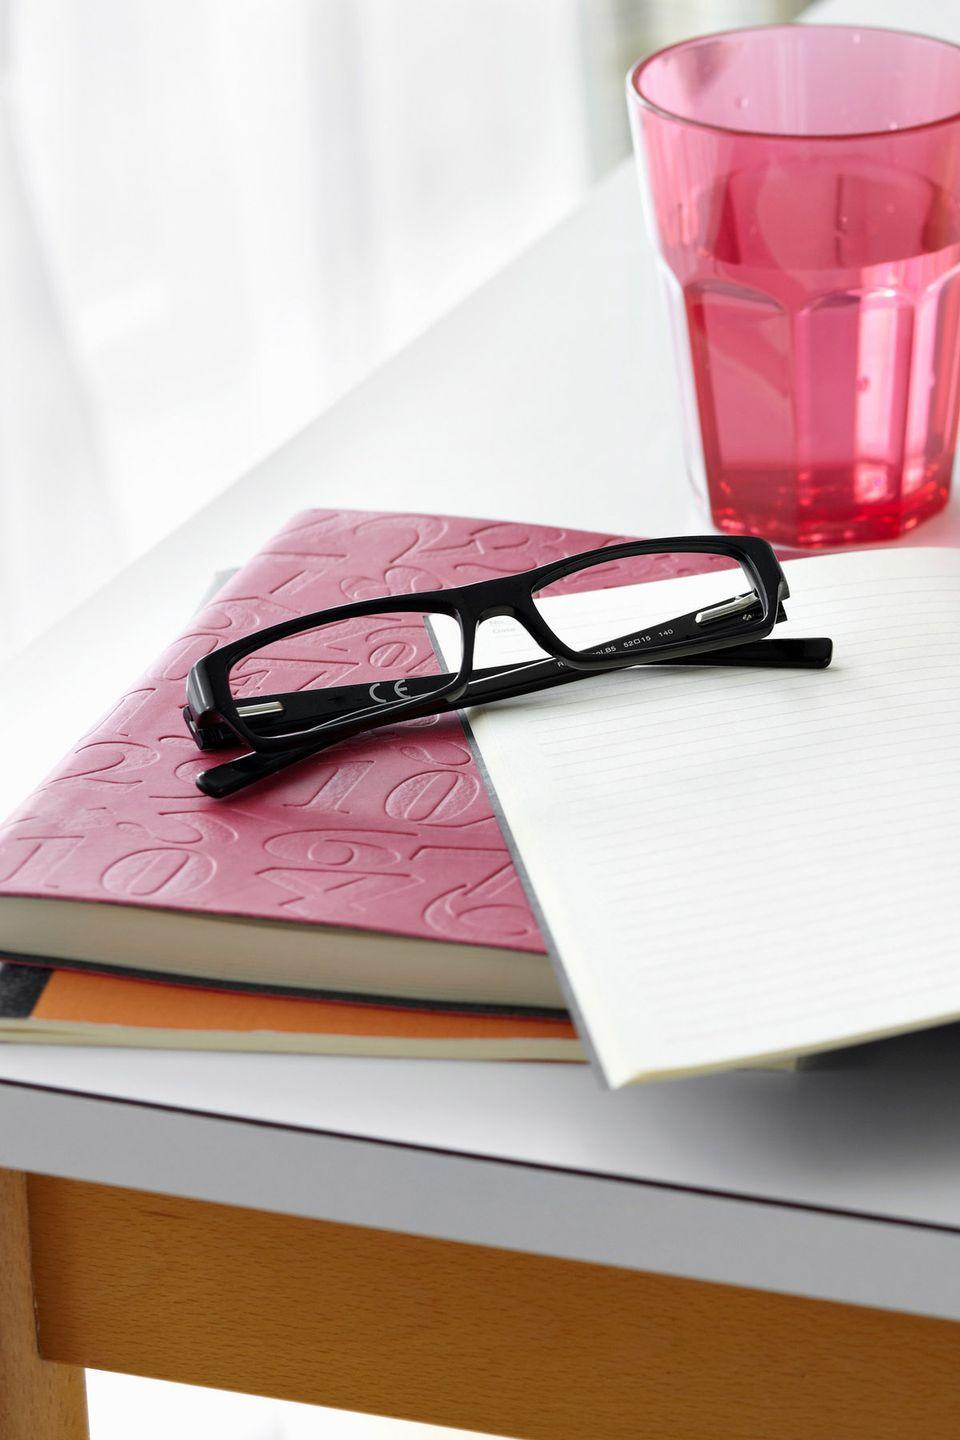 "<p>Either take up the habit, or pass along the empty journals to someone who could get use out of them. Although, these <a href=""https://www.goodhousekeeping.com/health/wellness/advice/a25762/health-benefits-journaling/"" rel=""nofollow noopener"" target=""_blank"" data-ylk=""slk:health benefits"" class=""link rapid-noclick-resp"">health benefits</a> might convince you to embrace it once and for all. You might also want to consider conserving paper by upgrading to a reusable smart notebook.</p><p> <a class=""link rapid-noclick-resp"" href=""https://www.amazon.com/Rocketbook-Everlast-Reusable-Notebook-Executive/dp/B06ZXWVZ3X/ref=sr_1_4?tag=syn-yahoo-20&ascsubtag=%5Bartid%7C10070.g.30809532%5Bsrc%7Cyahoo-us"" rel=""nofollow noopener"" target=""_blank"" data-ylk=""slk:SHOP SMART NOTEBOOKS"">SHOP SMART NOTEBOOKS</a></p>"